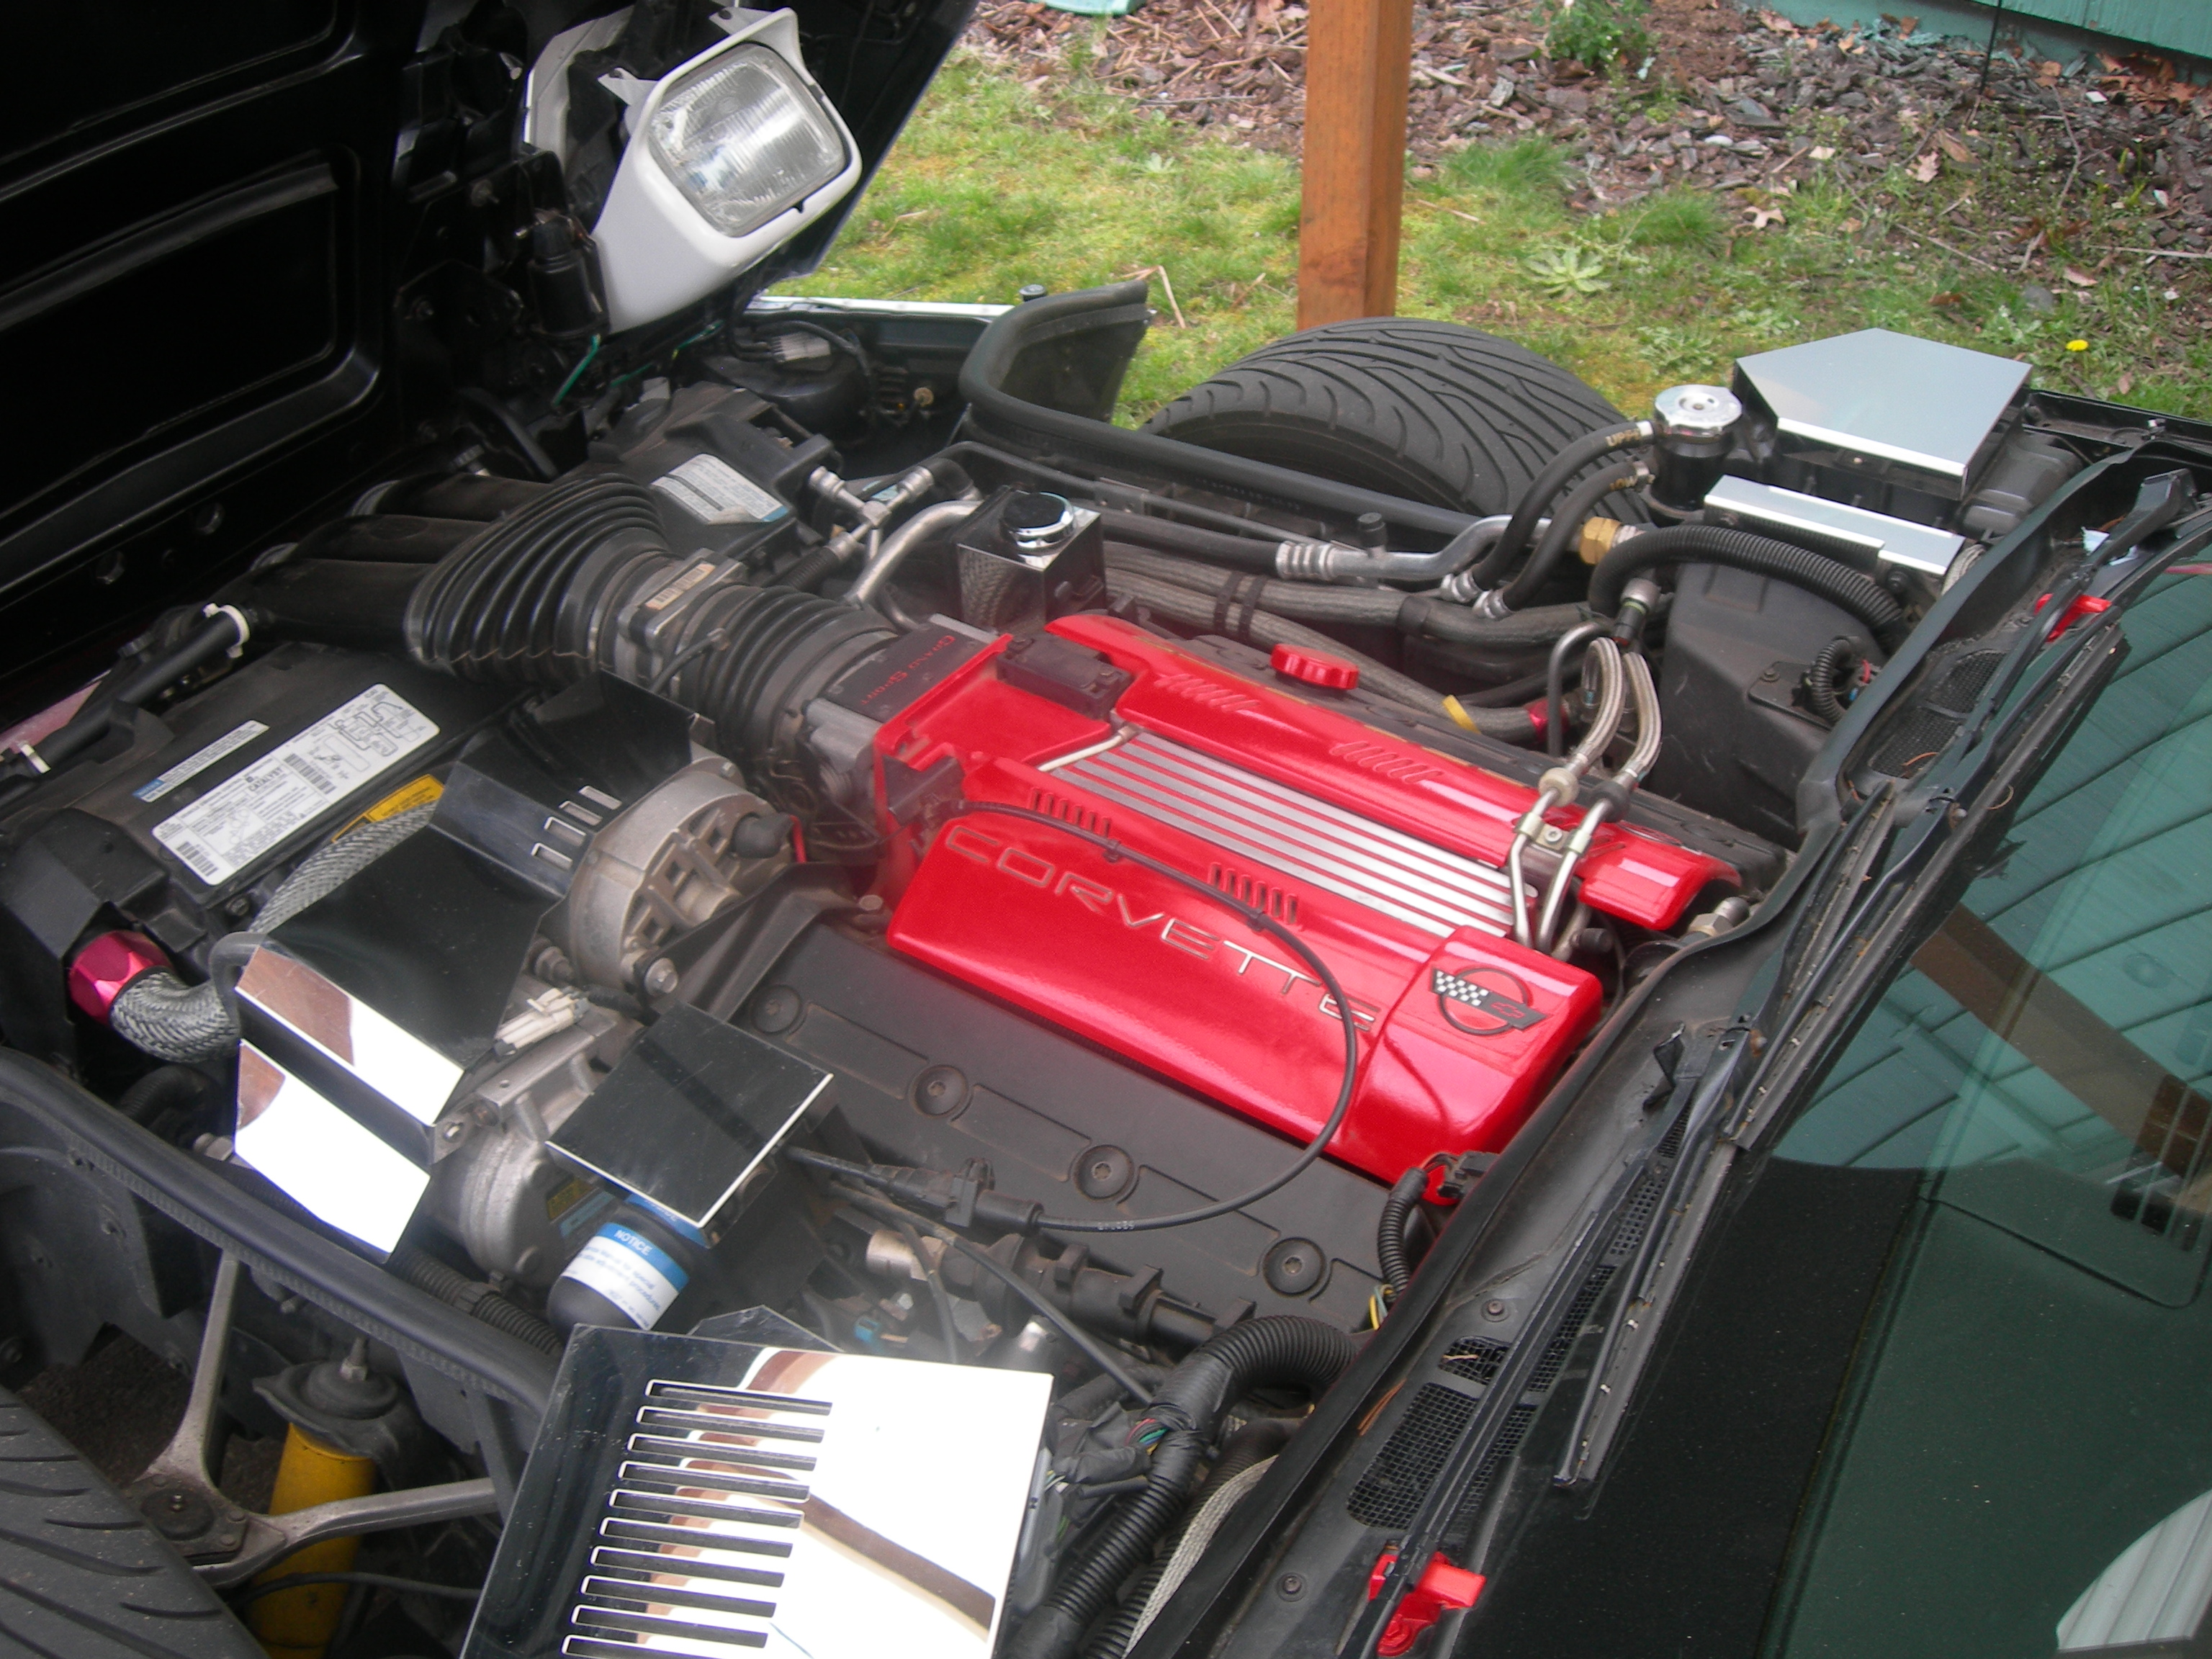 1996 Corvette With Lt4 Engine